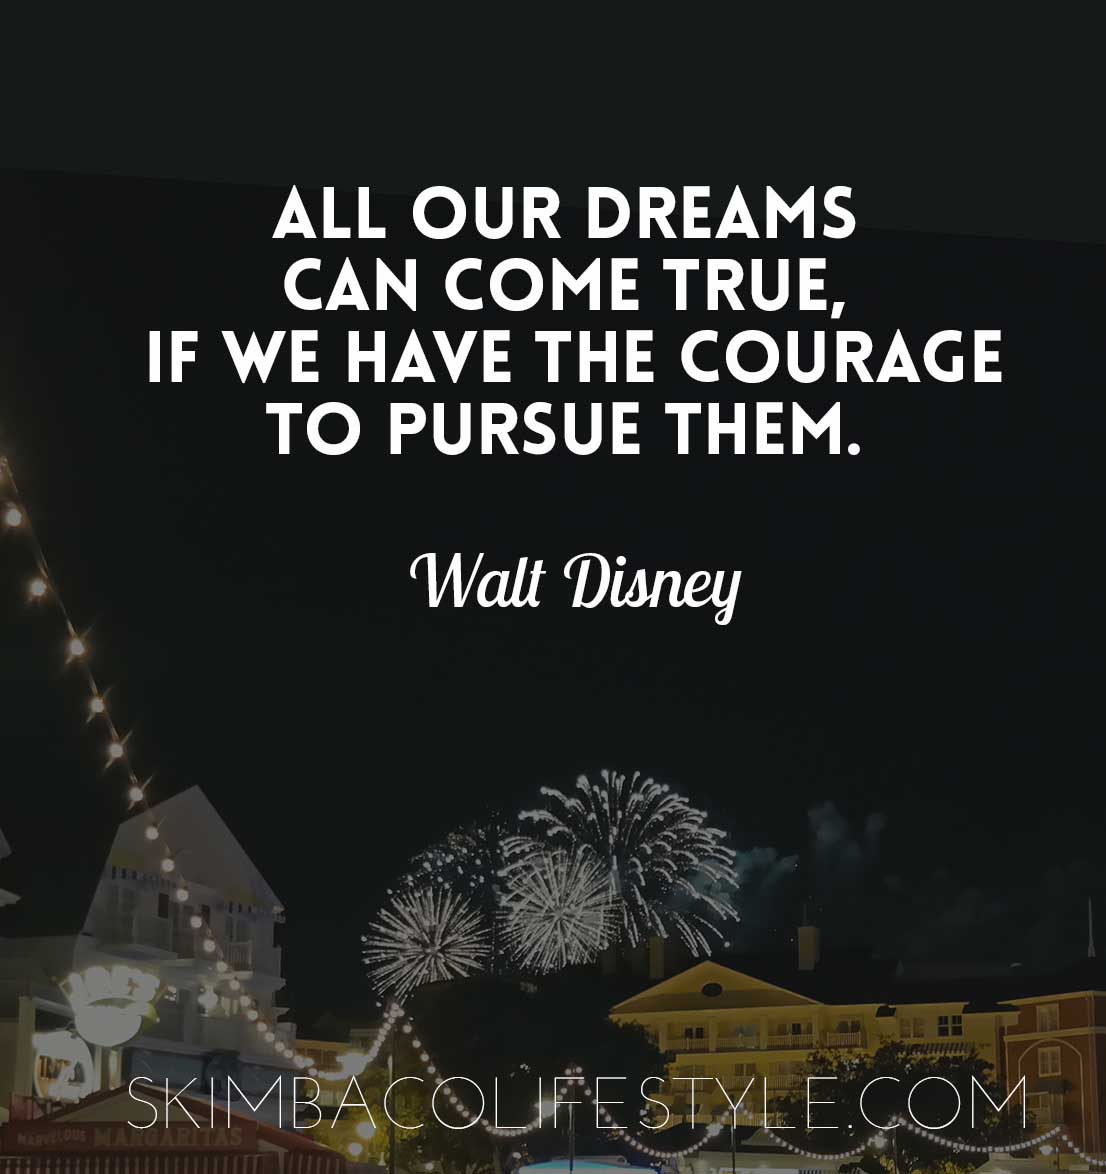 All our dreams can come true, if we have the courage to pursue them. Walt Disney. Via @skimbaco